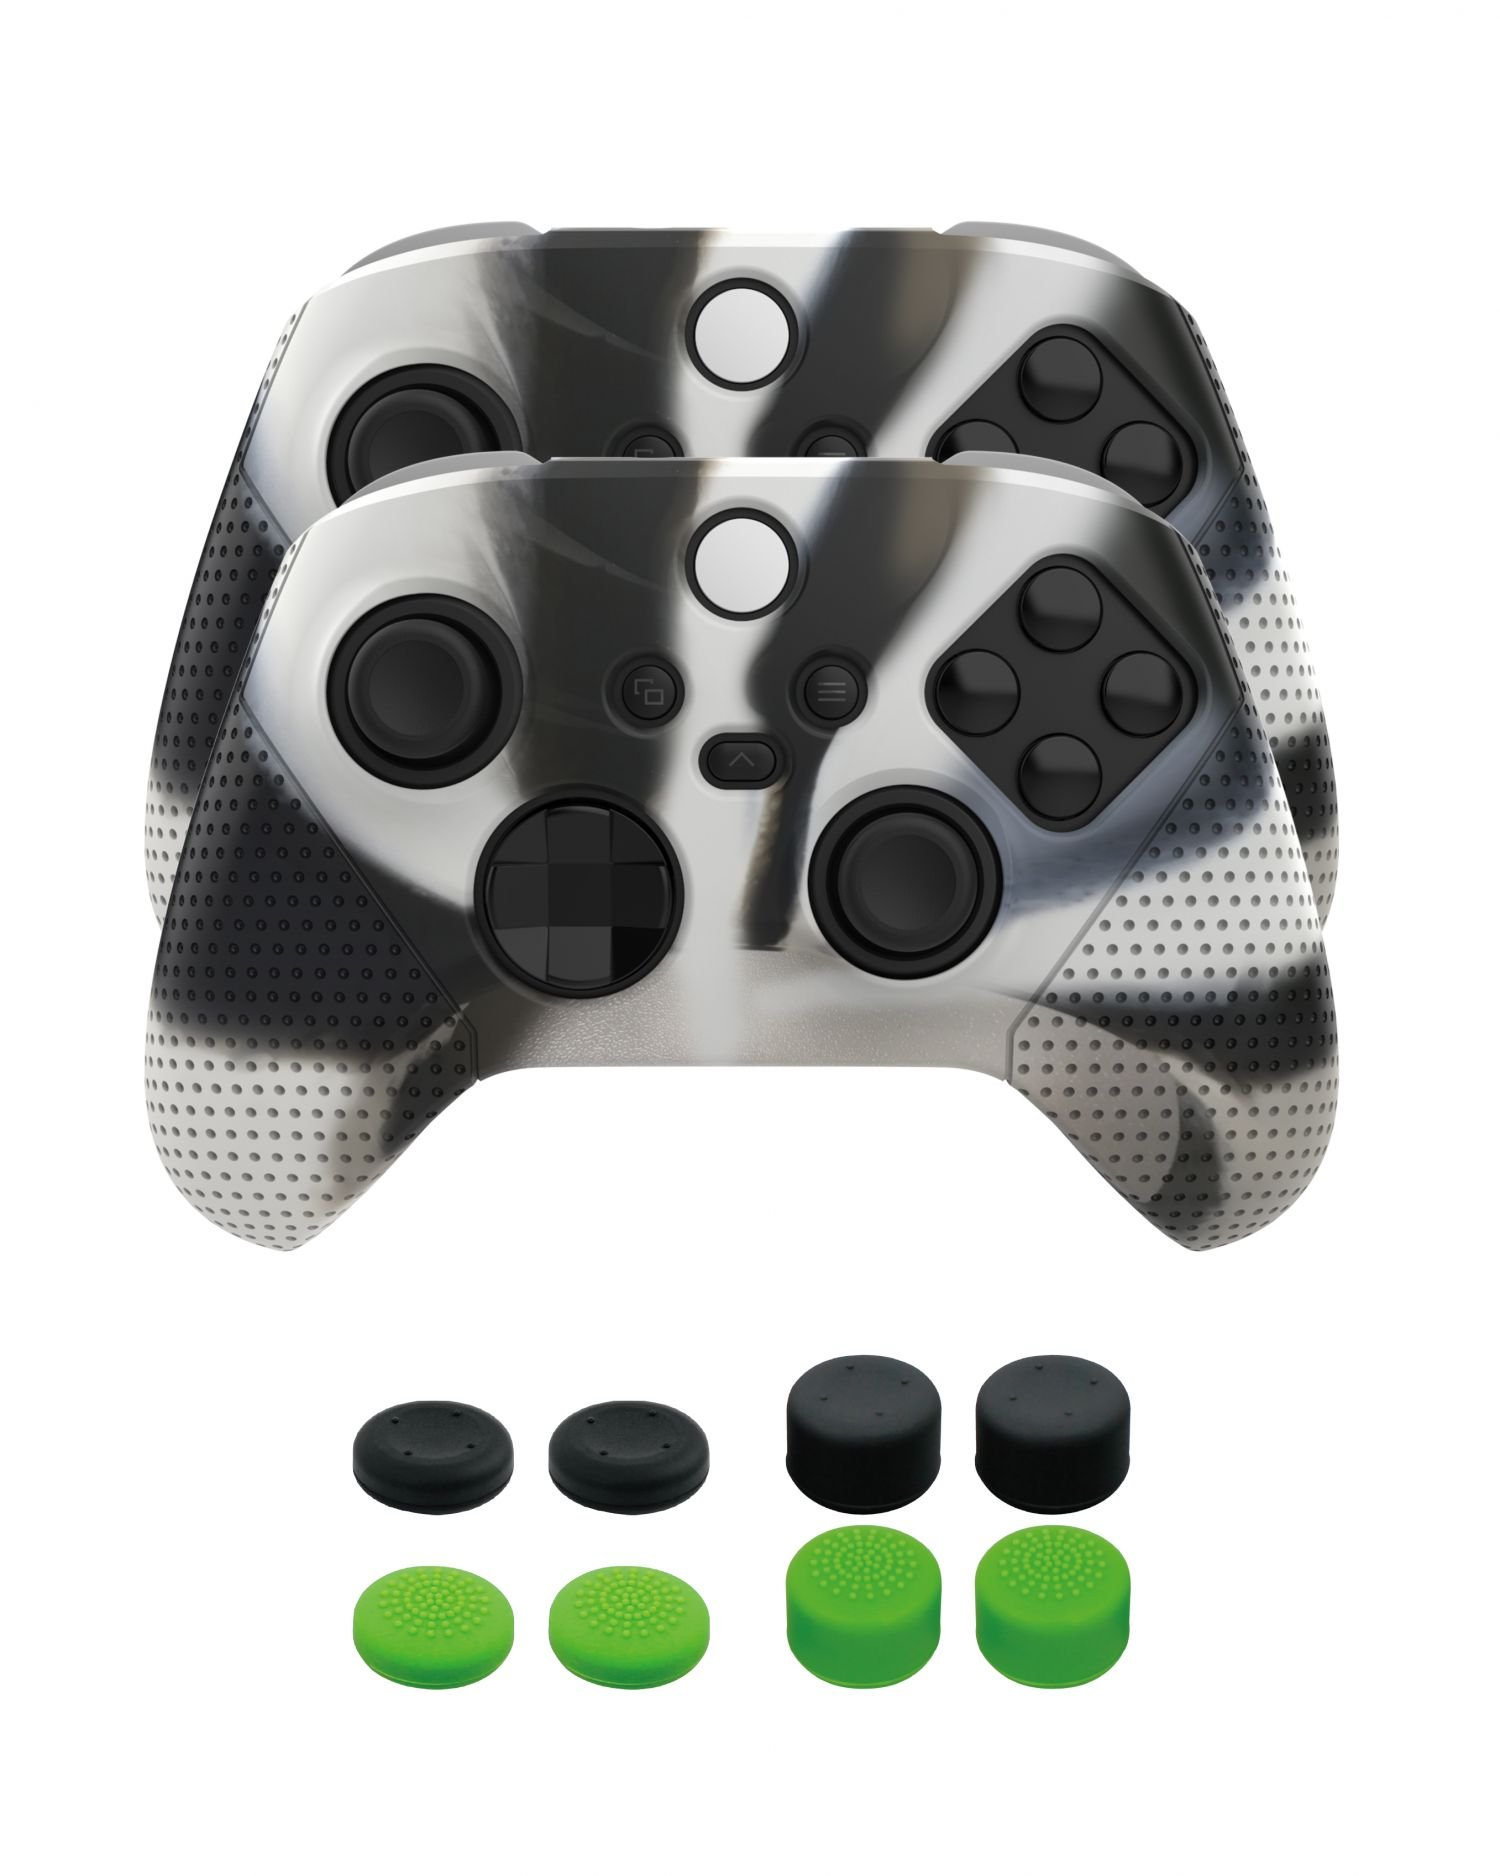 Piranha Xbox Grips and Sticks 10 in 1 Pack